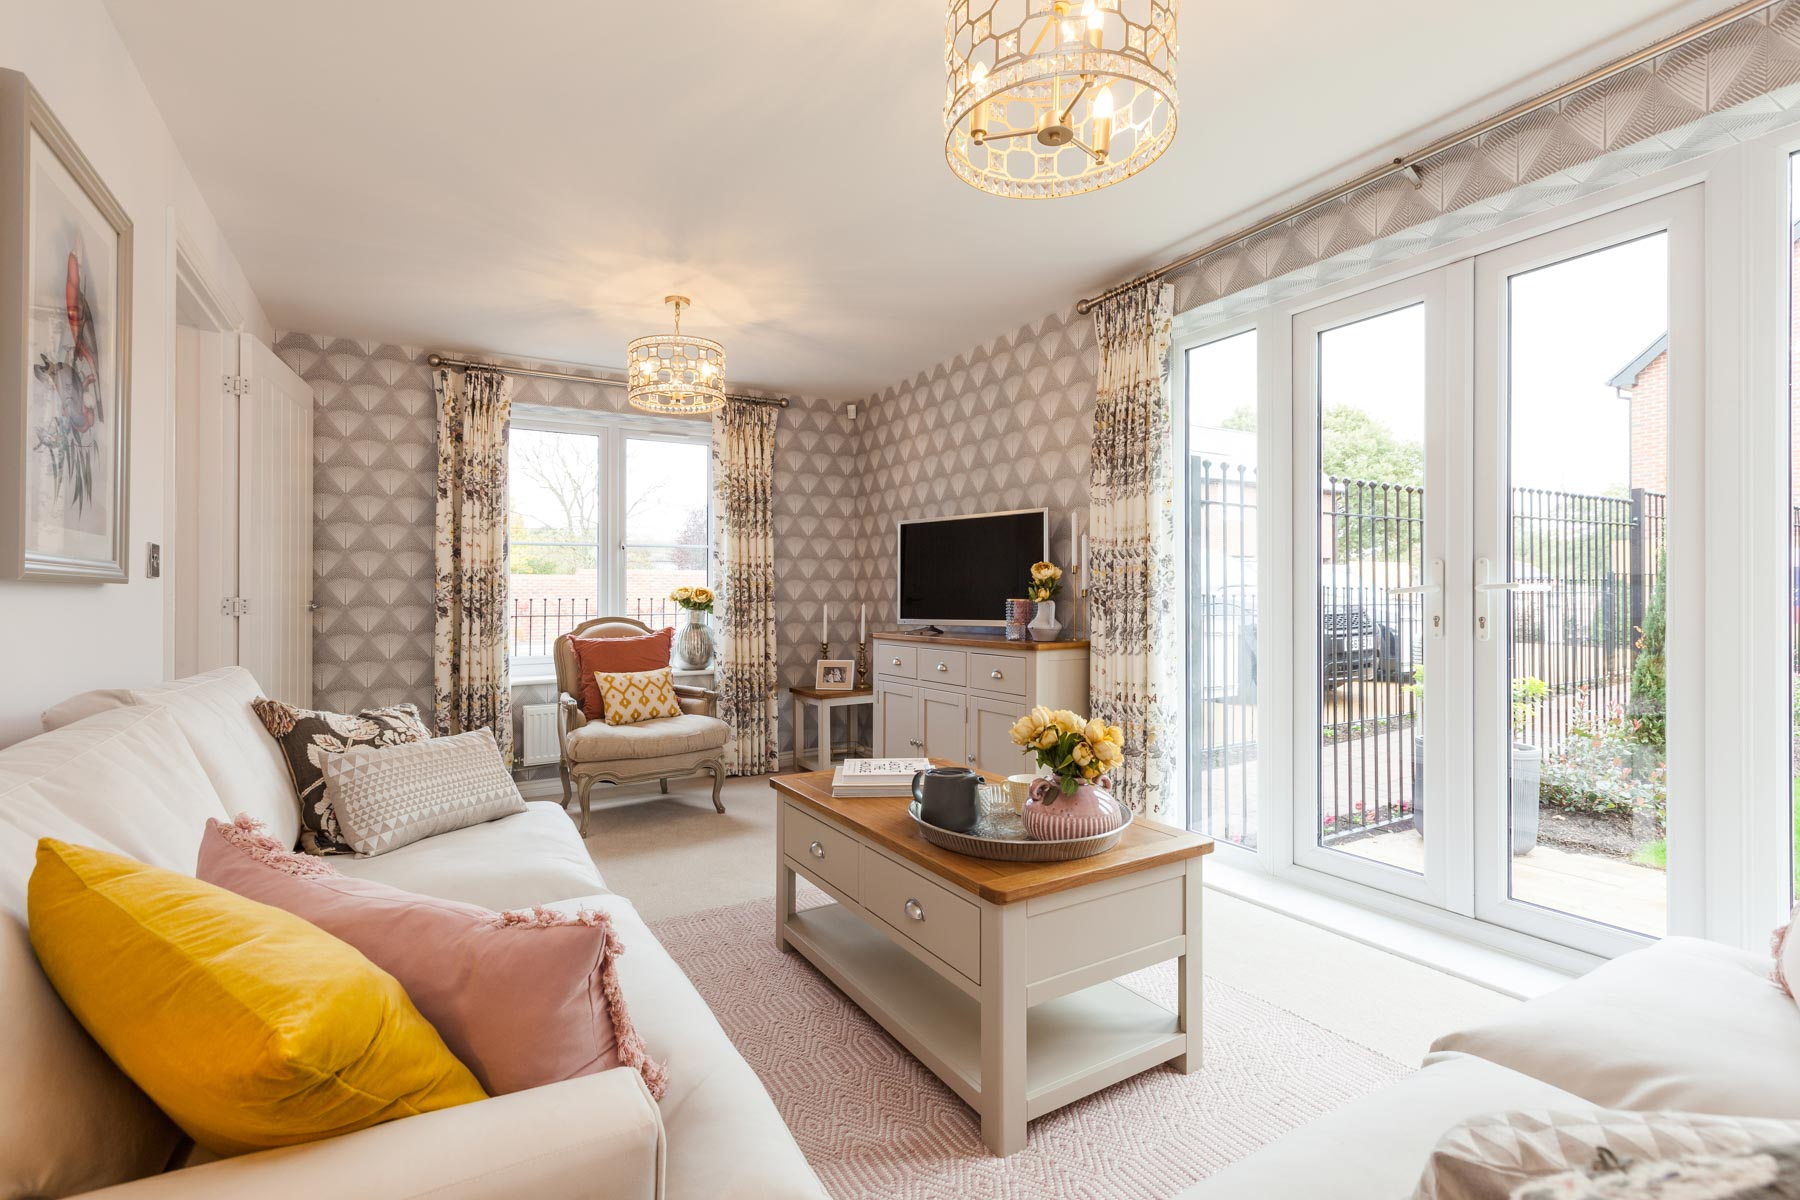 Typical Taylor Wimpey home - Lounge